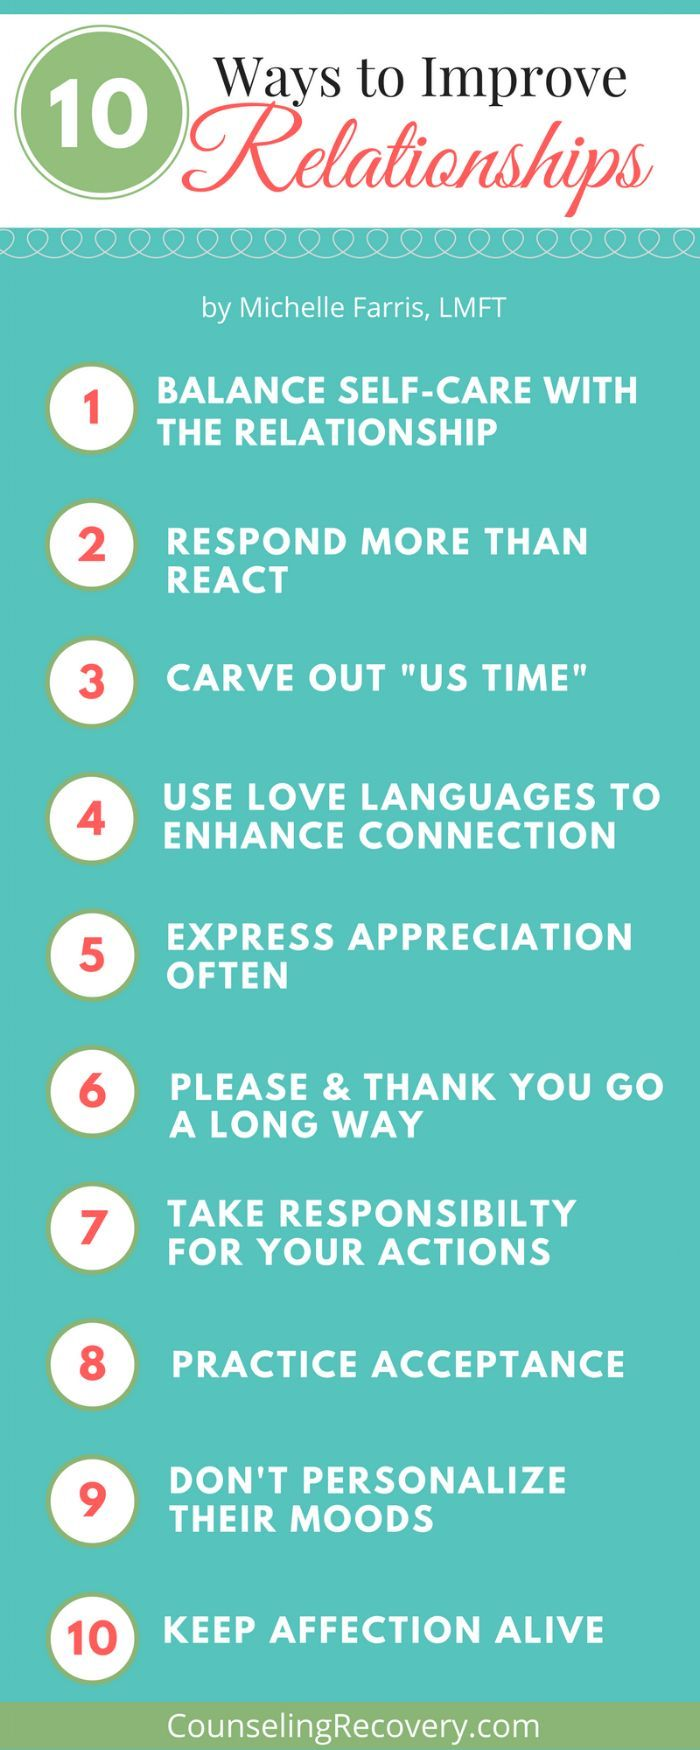 worksheet Healthy Relationships Worksheets 4 steps to transforming relationships setting boundaries how improve self care relationship advice codependency recovery communication tools 12 step recovery